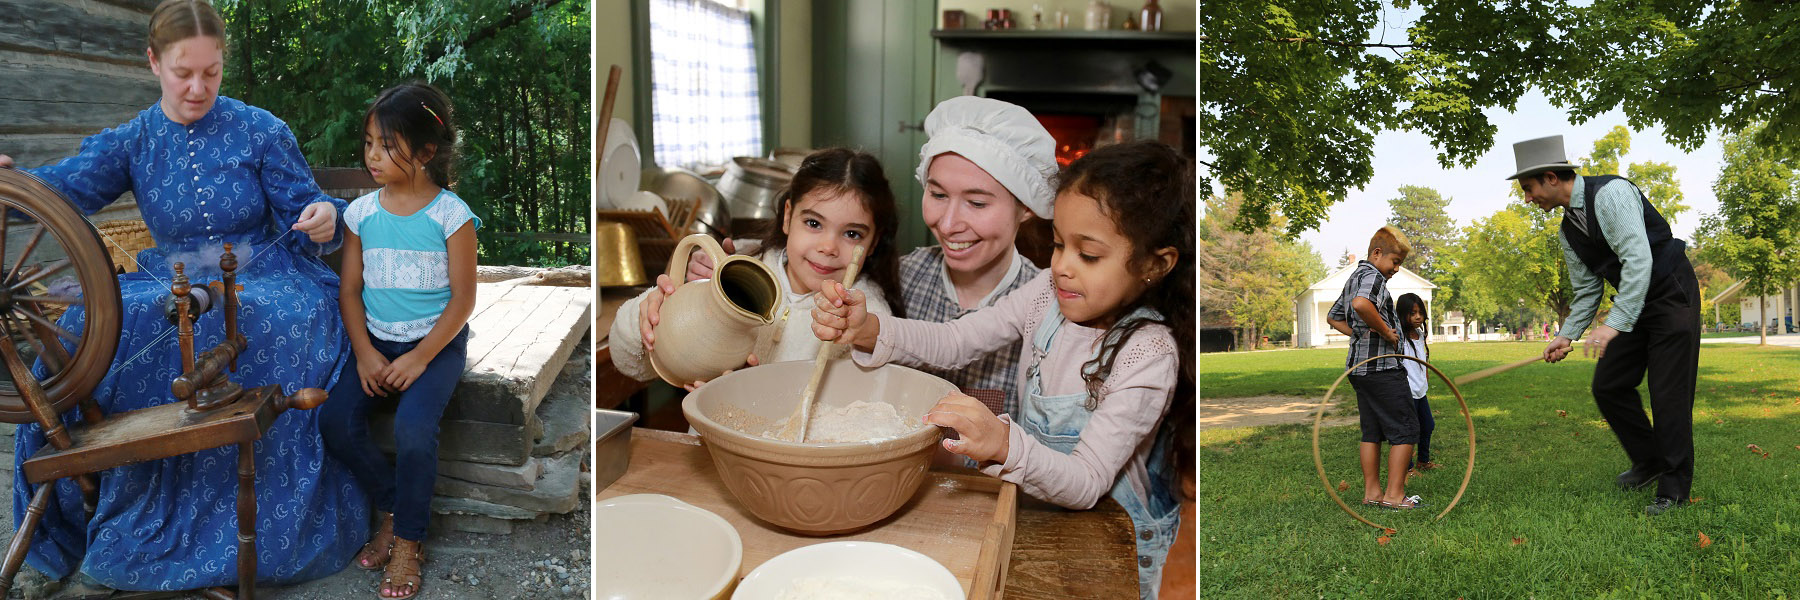 Black Creek historical interpreters engage children in various activities